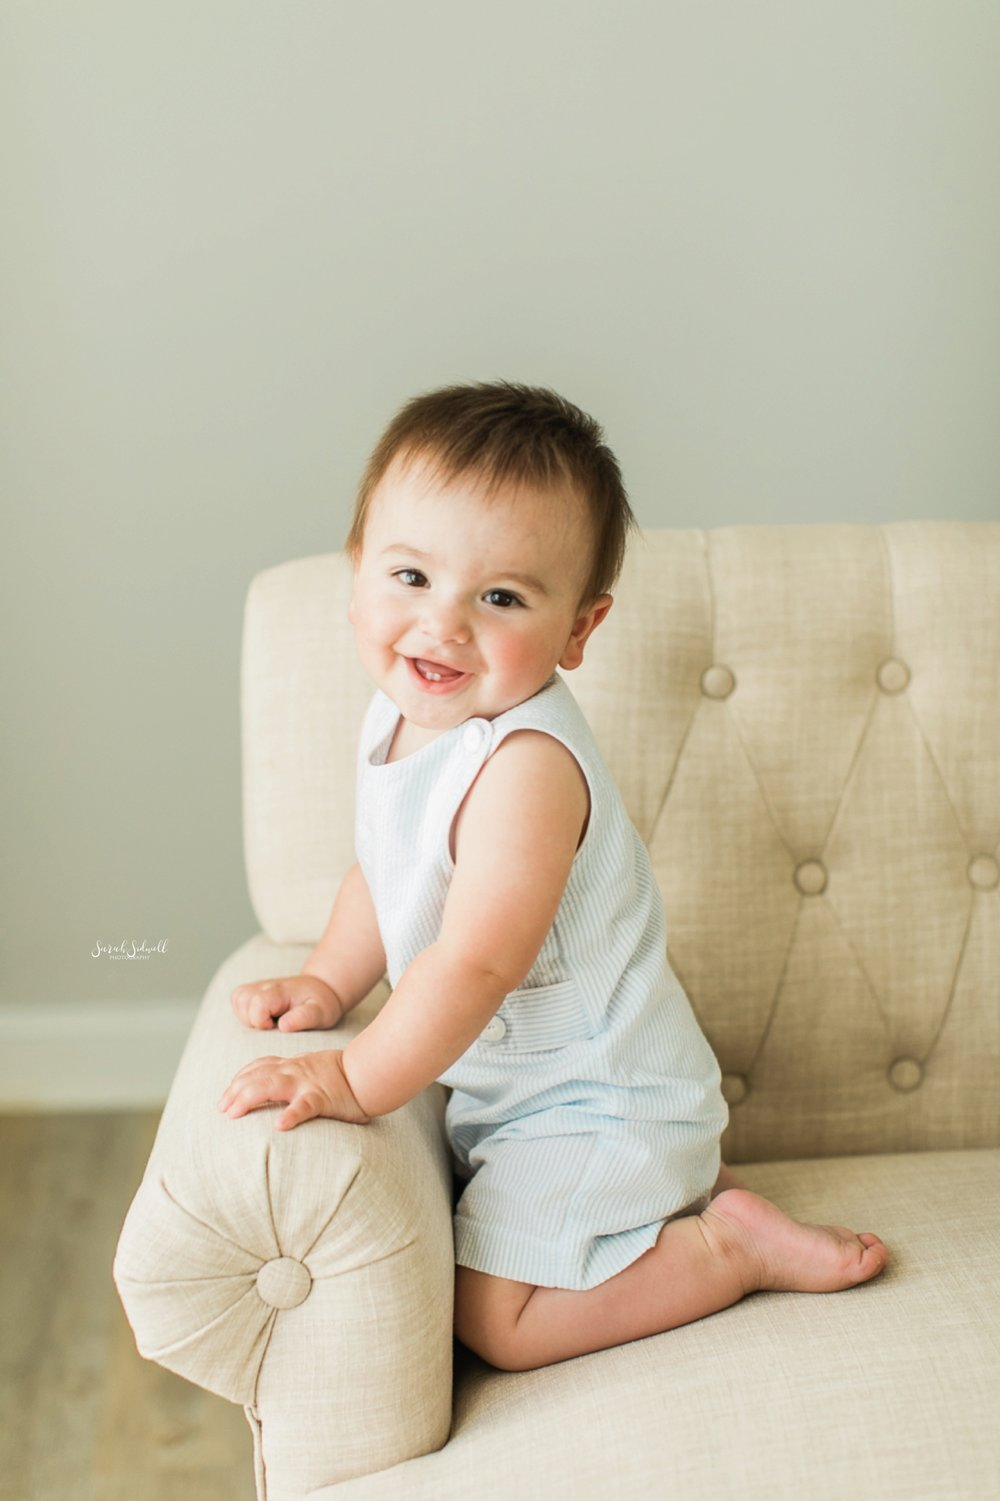 A baby sits on his knees in a white chair.